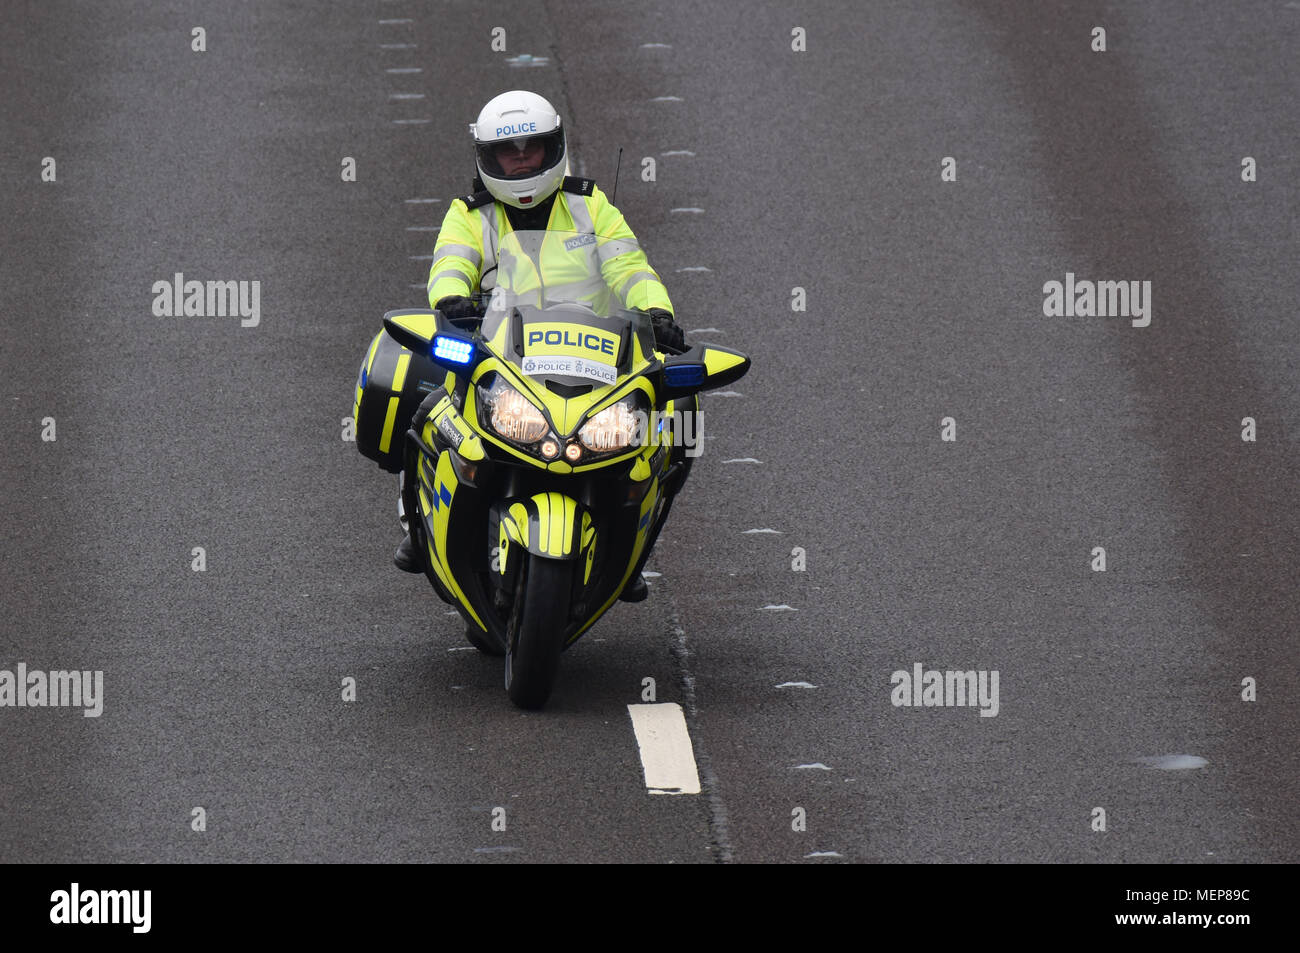 West Mercia Police Force motorcyclist - Stock Image